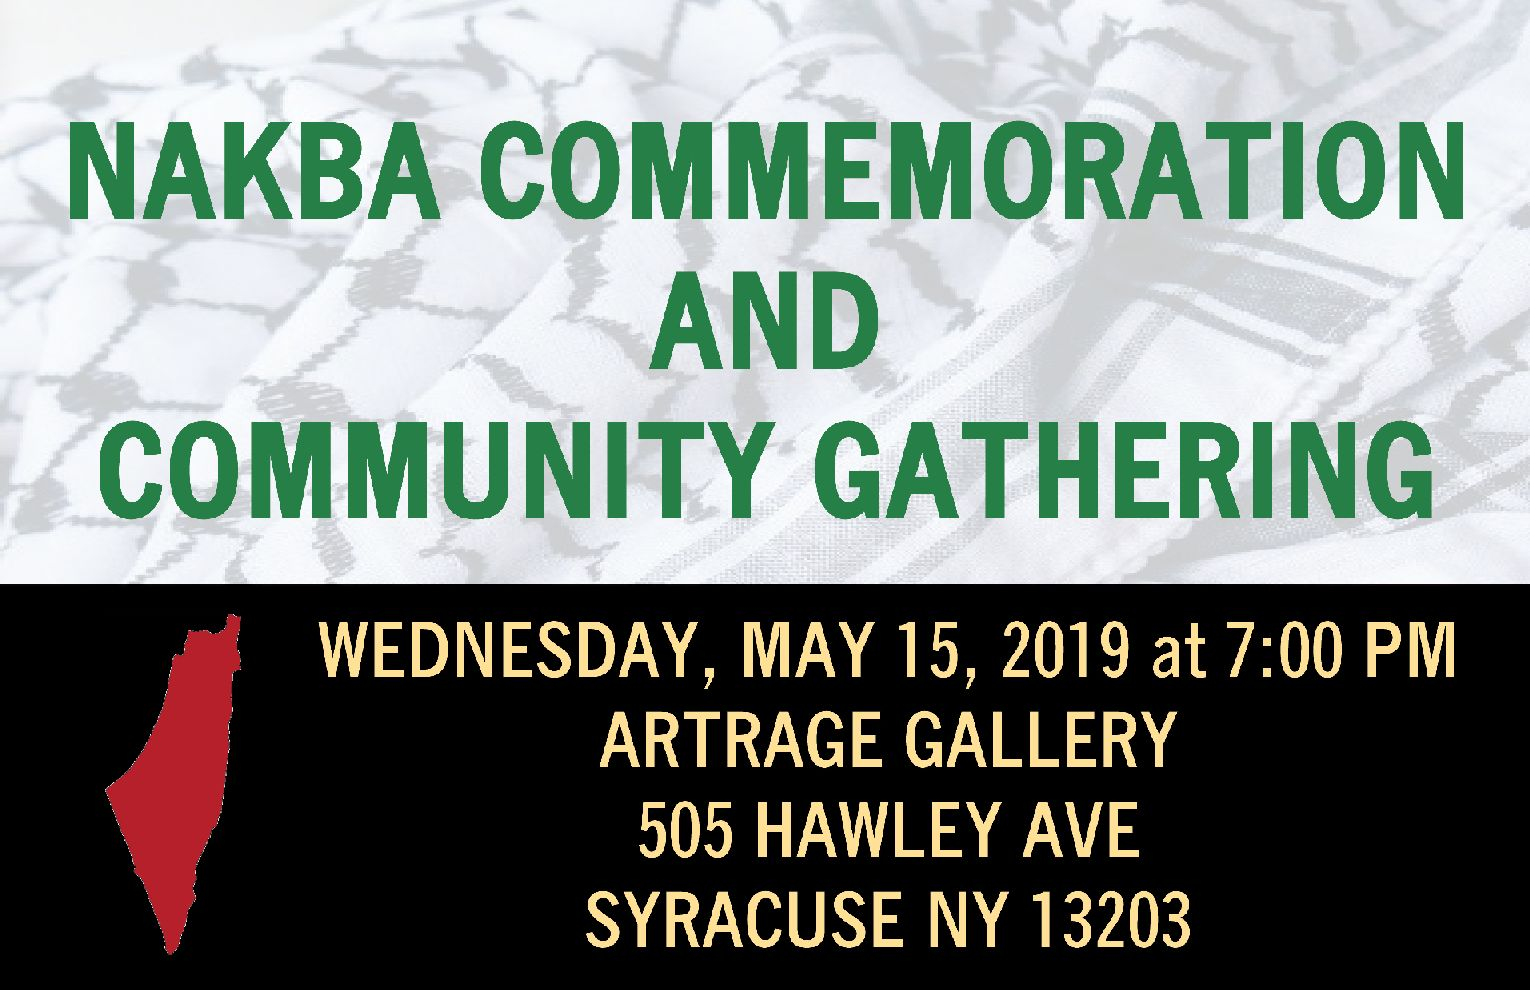 Nakba commemoration event graphic